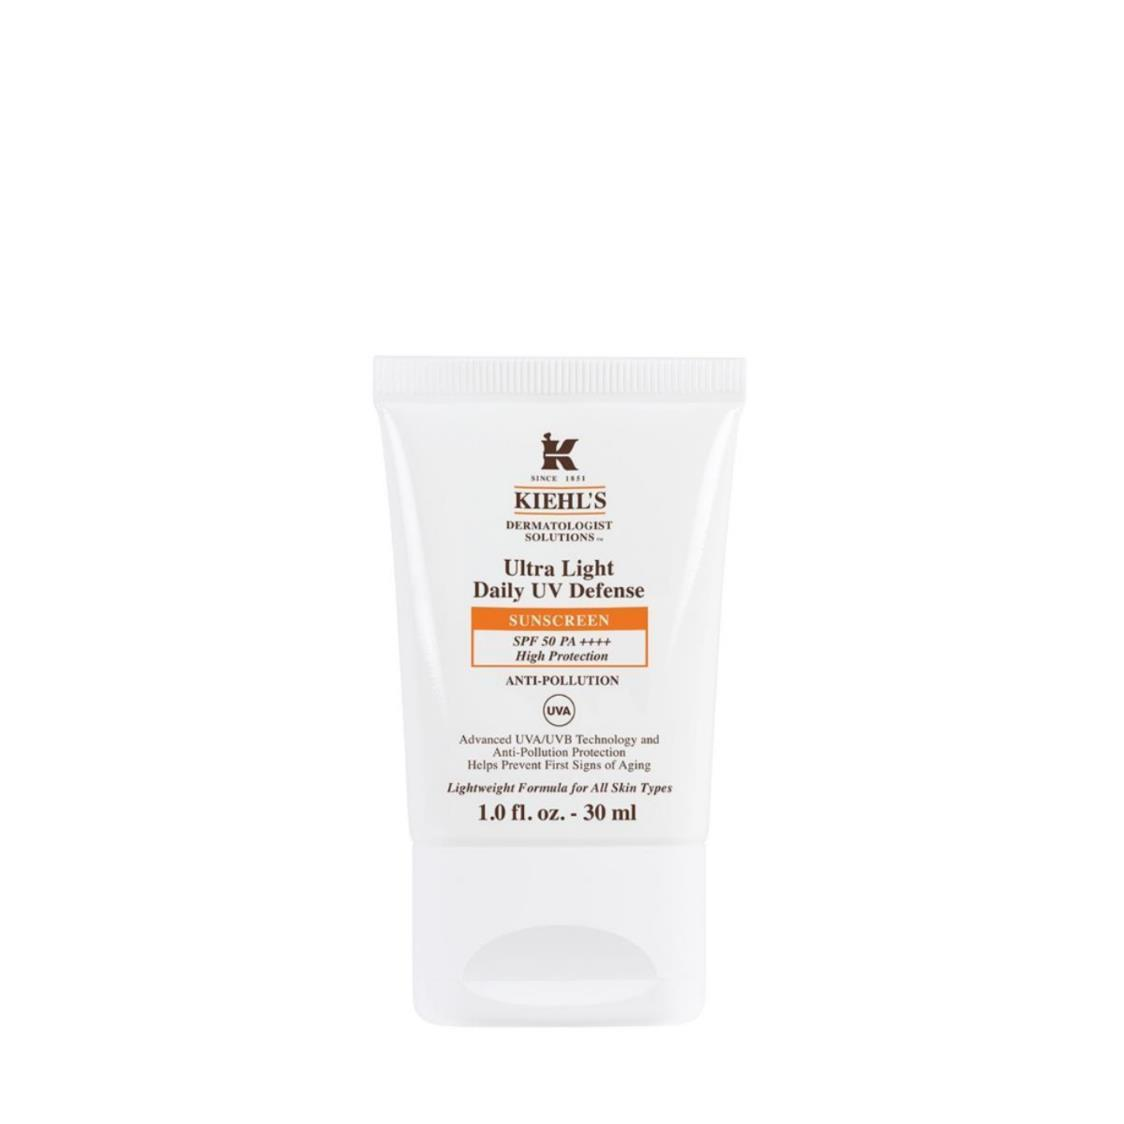 Ultra Light Daily UV Defense SPF 50 PA